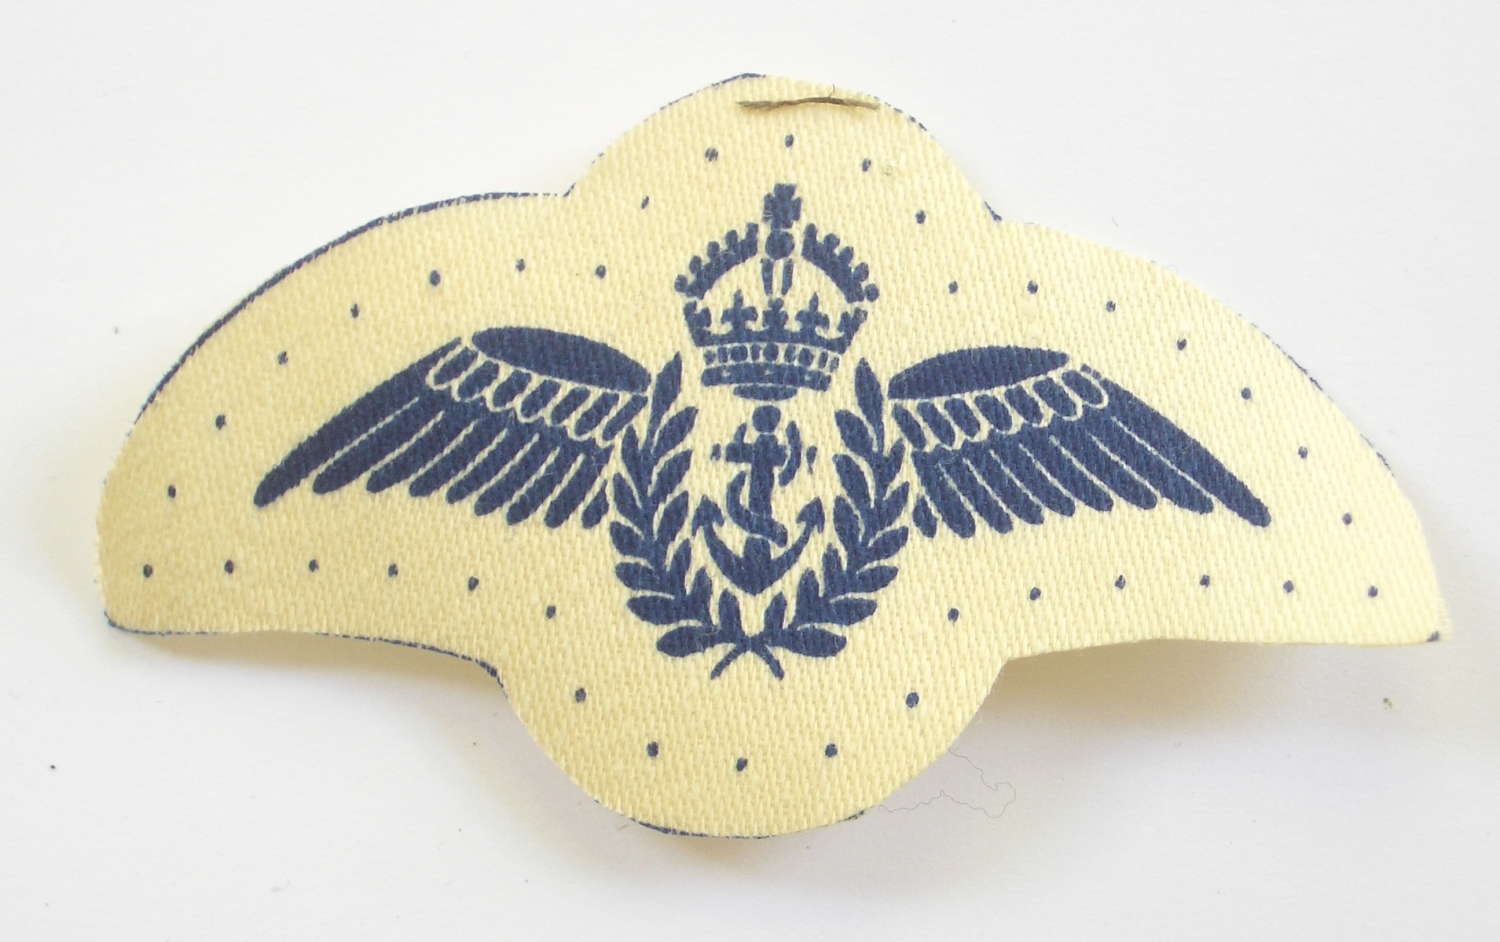 WW2 RN Fleet Air Arm rating pilot's wing